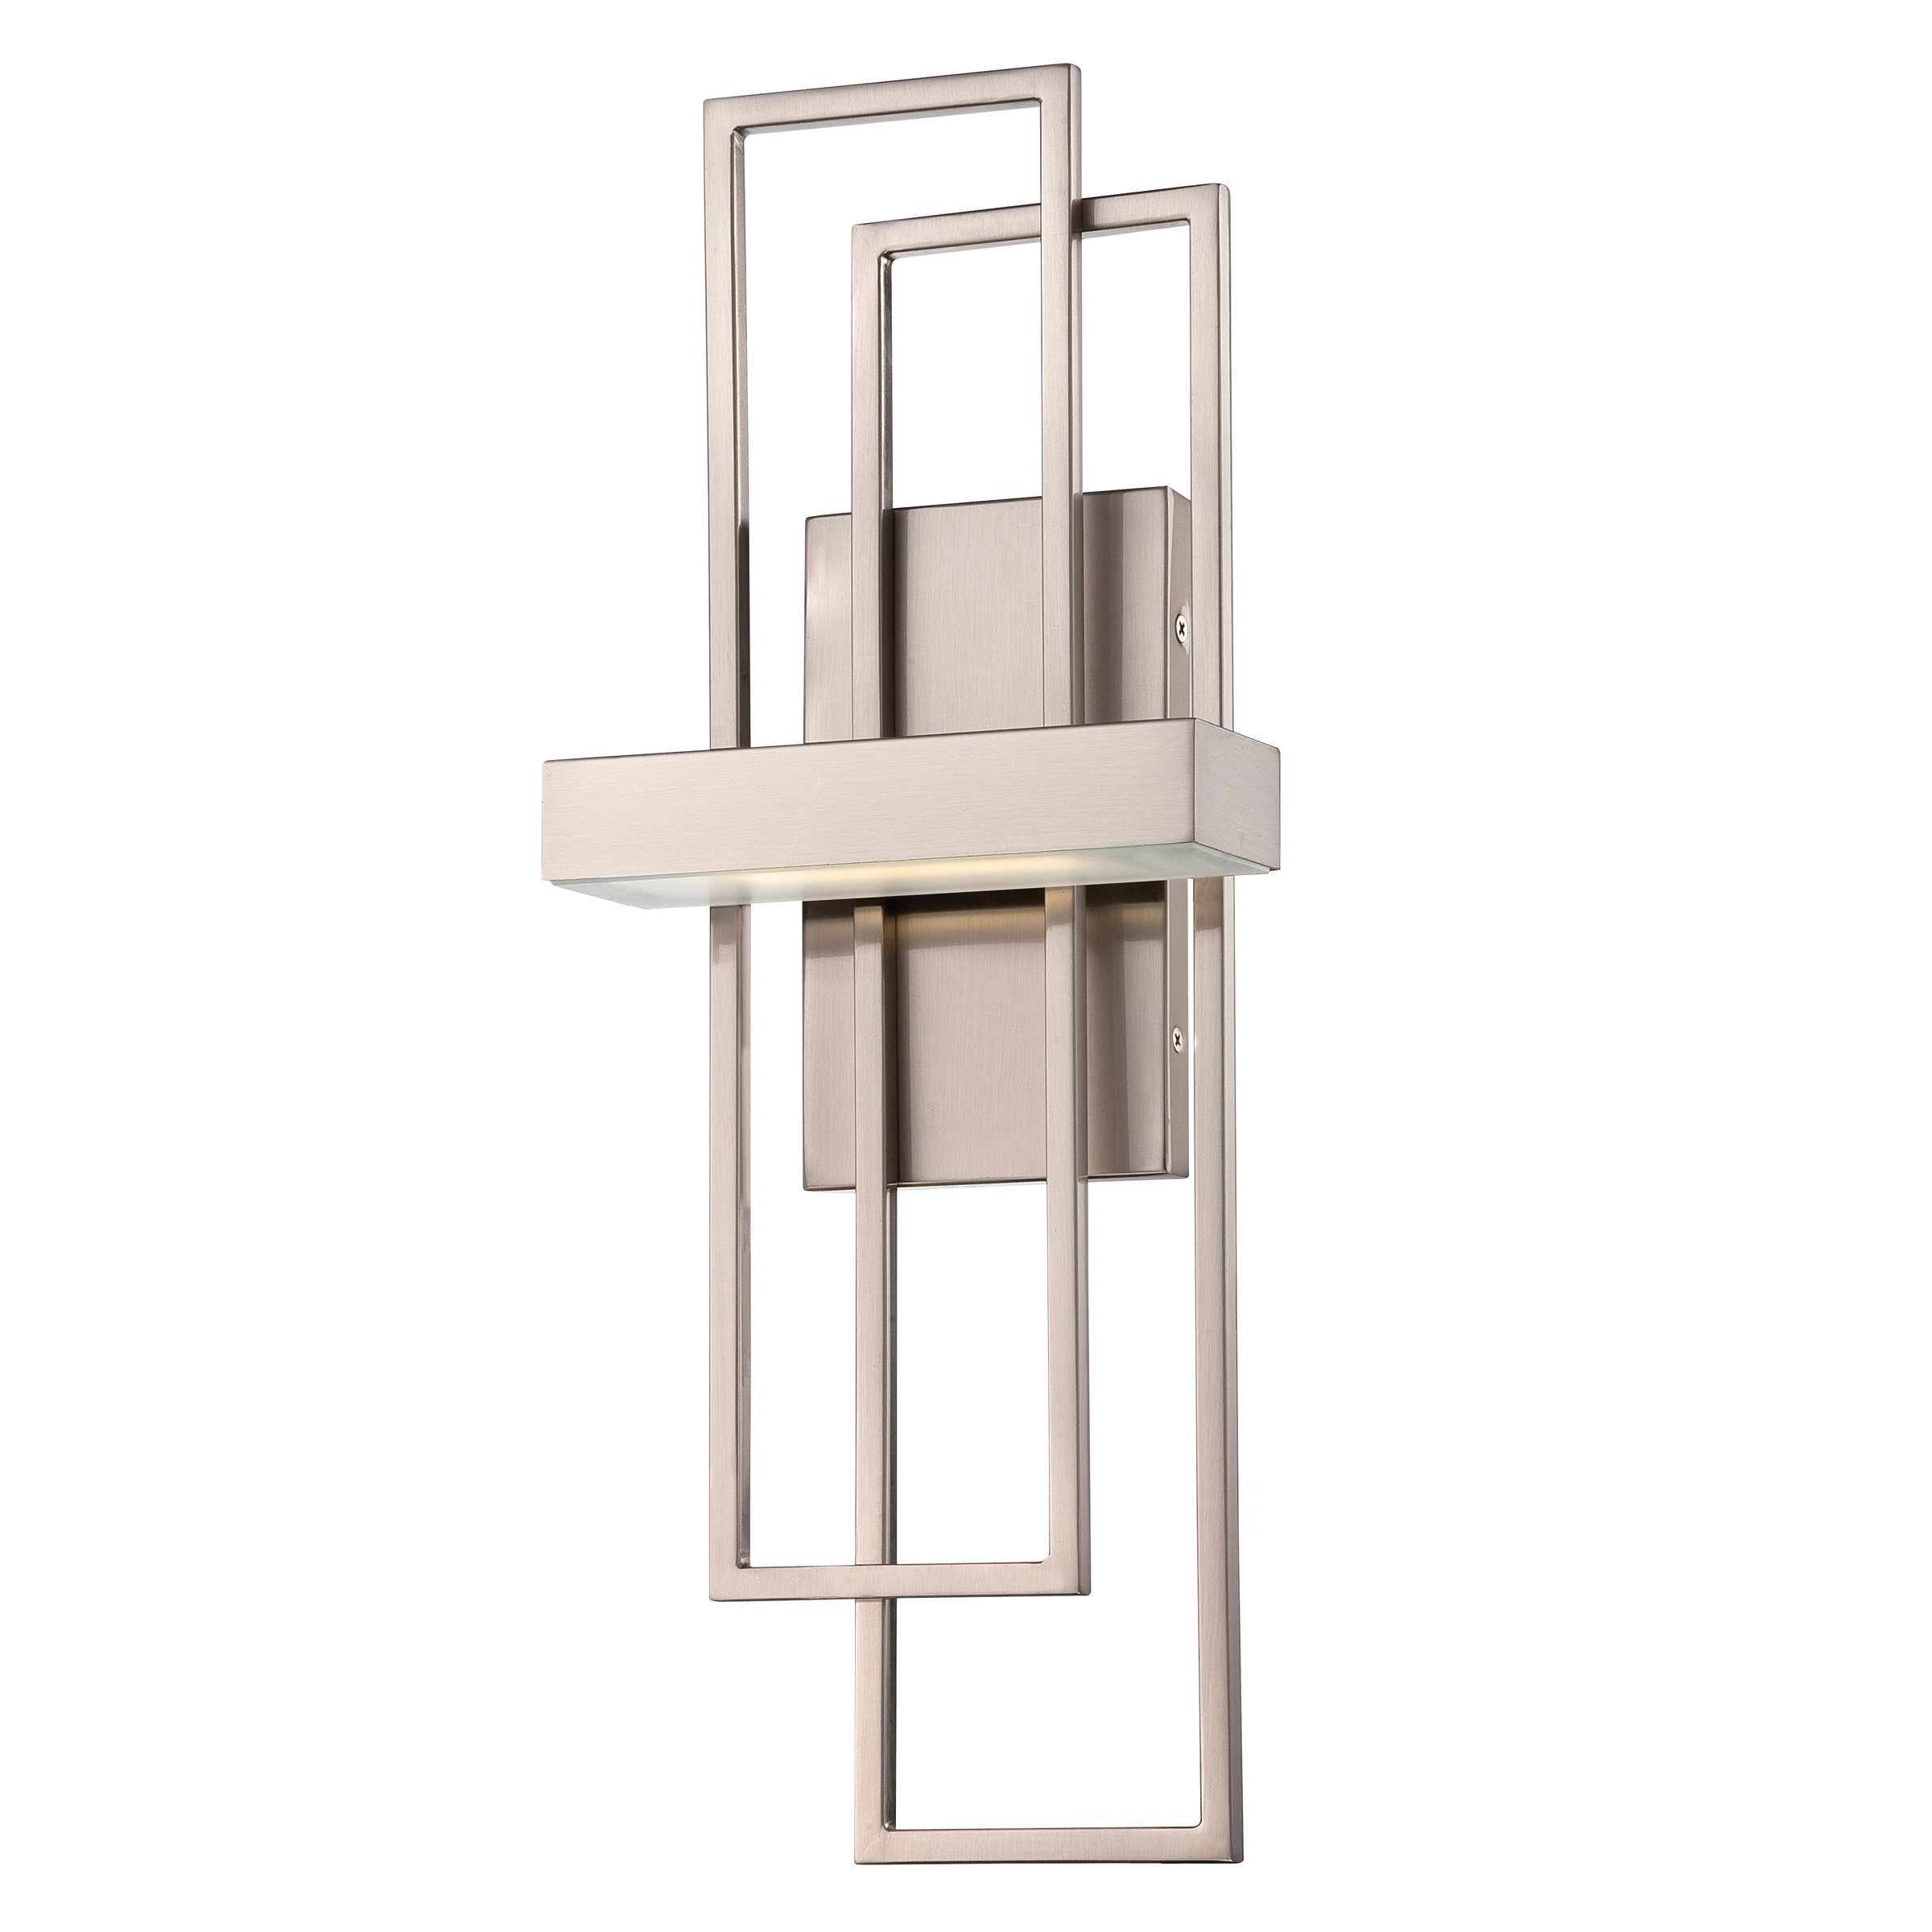 CW5004  sc 1 st  Mario Contract Lighting & CW5004 | Wall Sconce | Mario Contract Lighting azcodes.com